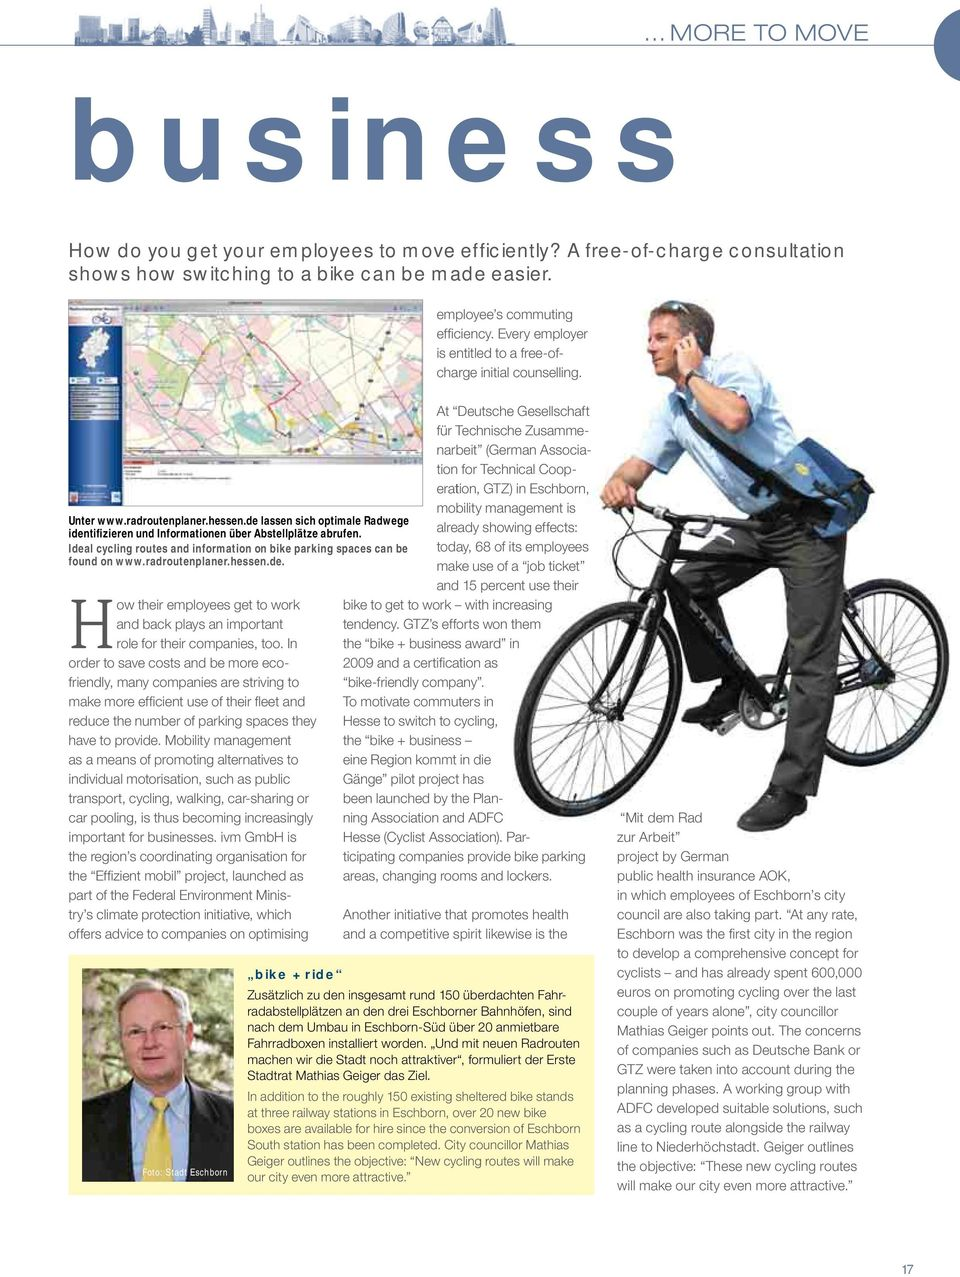 Ideal cycling routes and information on bike parking spaces can be found on www.radroutenplaner.hessen.de. How their employees get to work and back plays an important role for their companies, too.